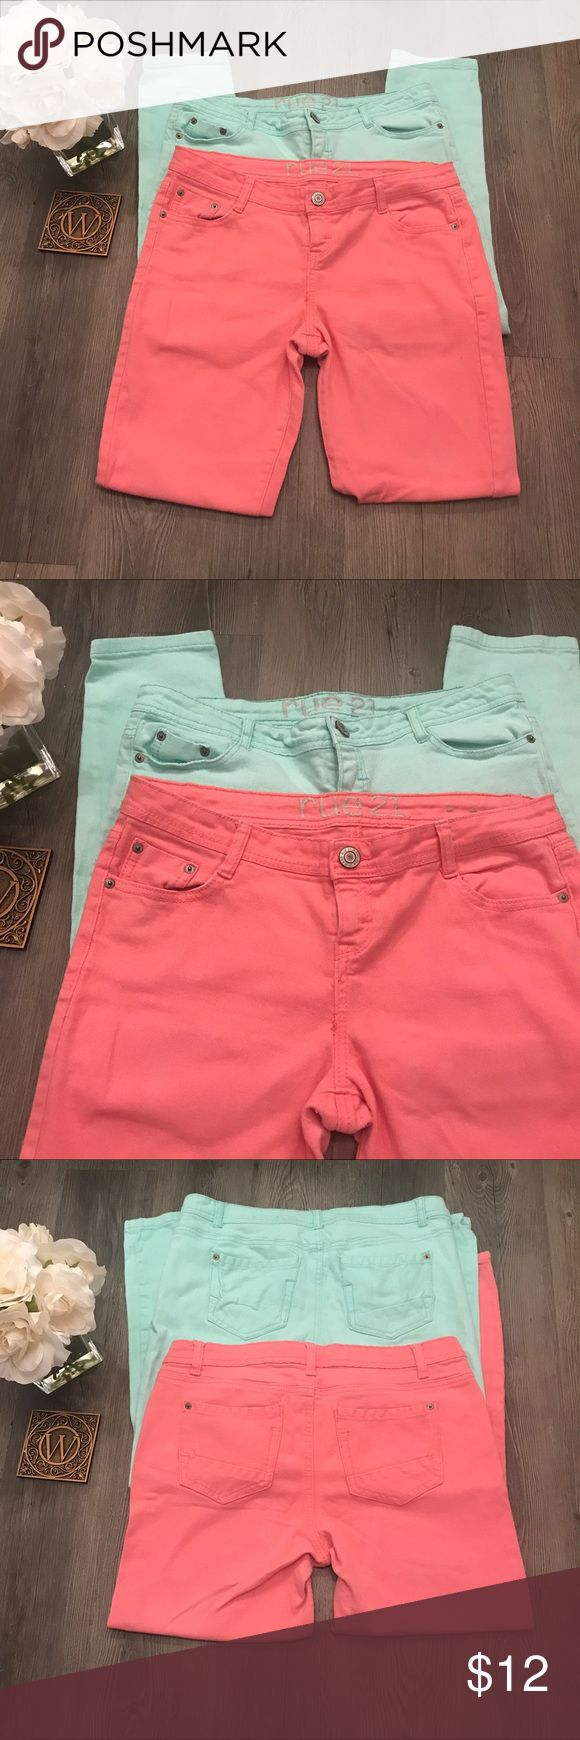 Rue 21 Coral and Mint Green jeans Juniors Brand: Rue 21. Colors: Mint Green and Coral. Juniors Size 11/12 Jeans . Bundle . Measurements: Length 26 in. Waist 19 in.  Materials 98% Cotton, 2% Spandex. GTEAT CONDITION Rue 21 Jeans Skinny